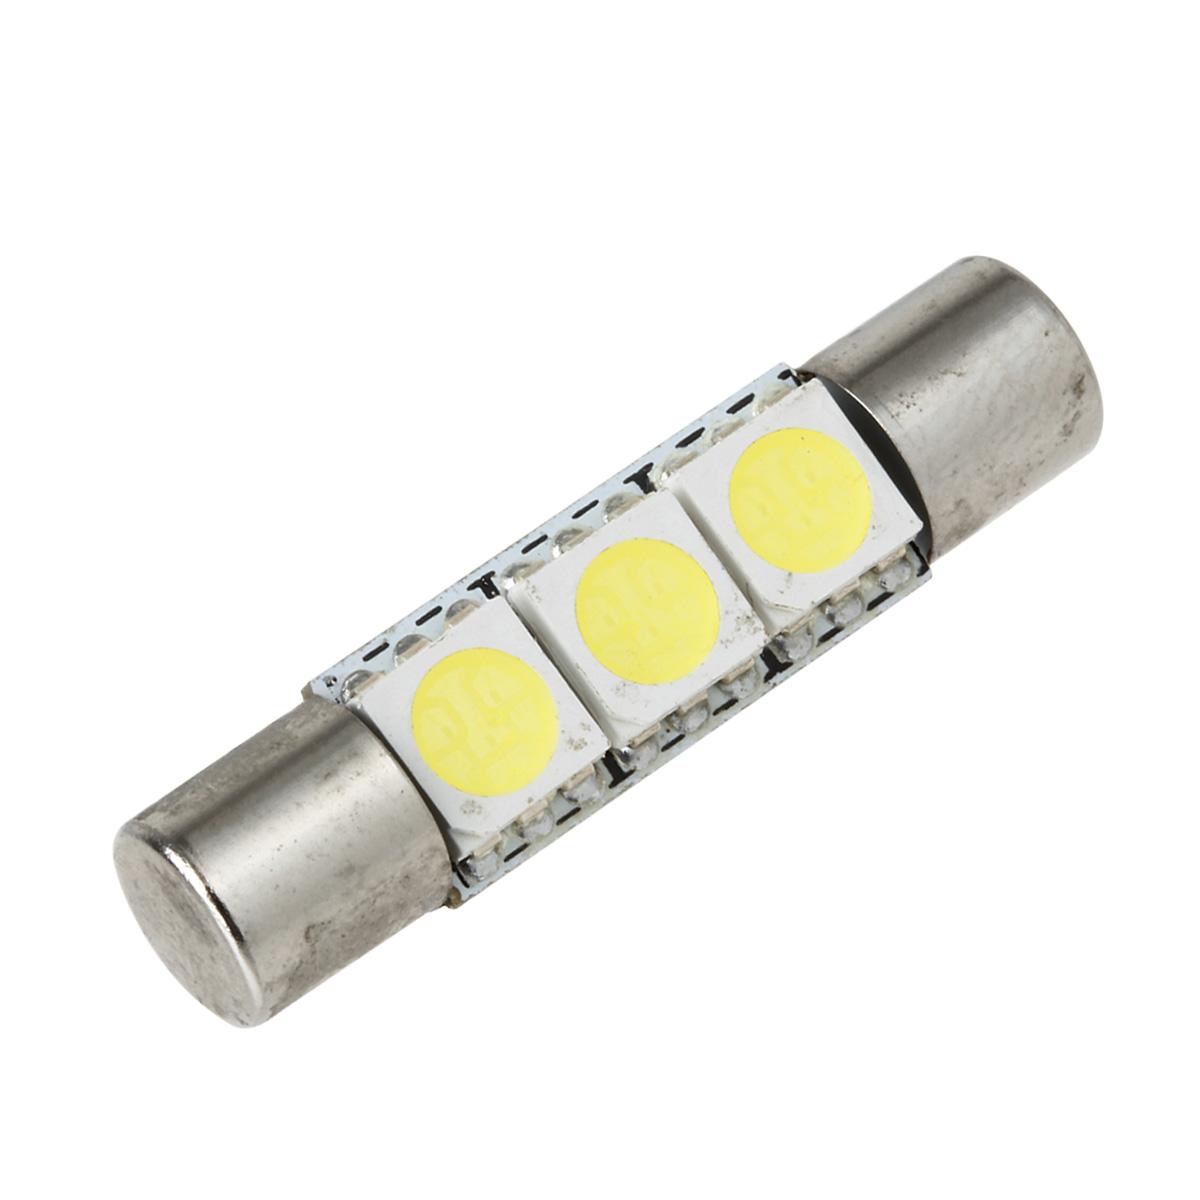 Vanity Mirror Led Light Bulbs : 8X 6000K White 3SMD LED Bulbs Interior Vanity Mirror Lights Fuse Shape 6641 29mm eBay